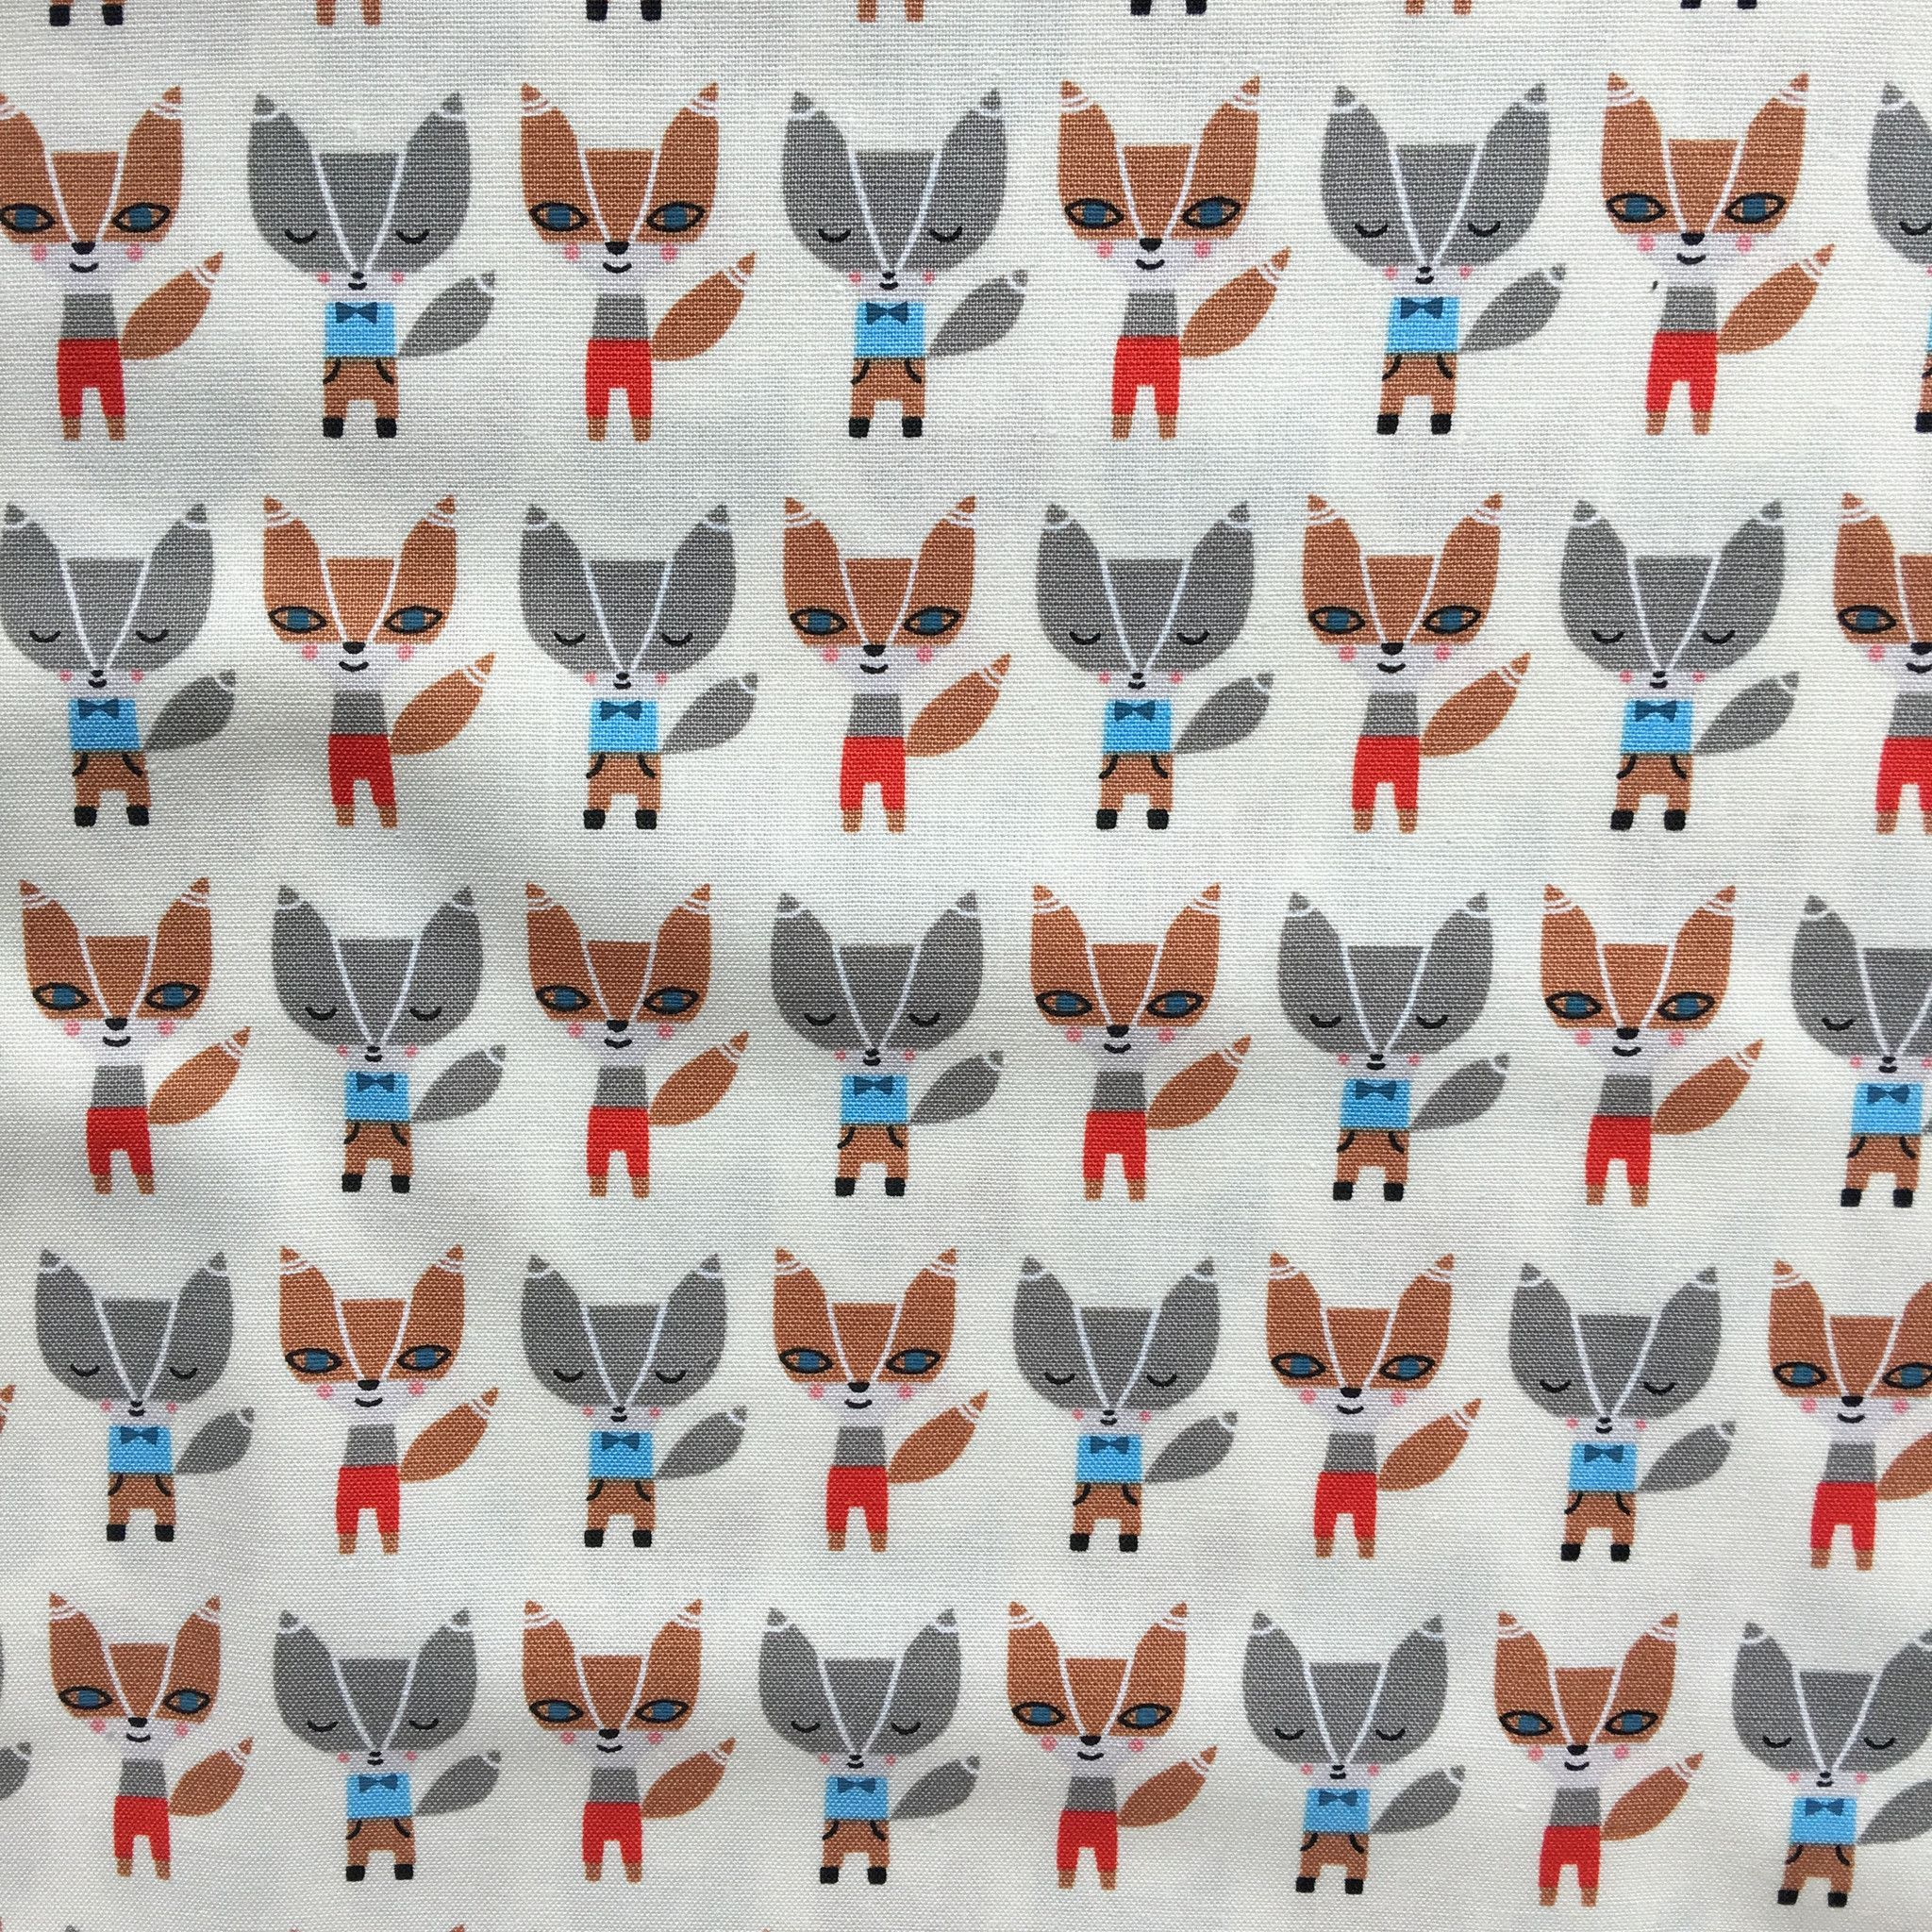 Mini Foxes in Natural - Suzy Ultman – Fridays Off